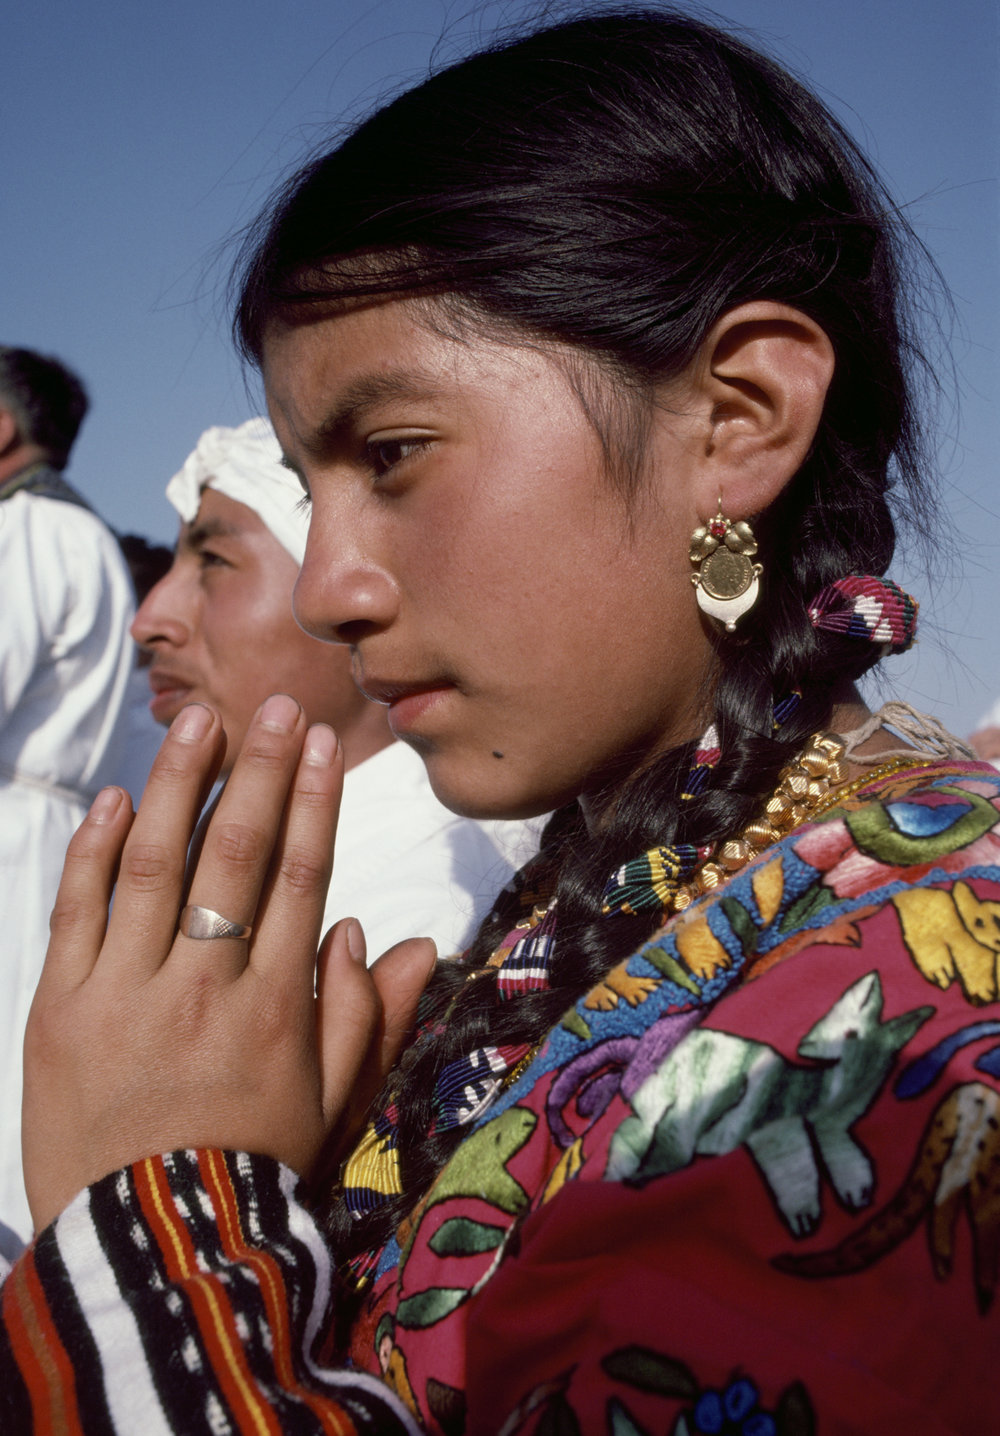 An ethnic Maya woman prays during the visit of Pope John Paul ll in Guatemala City, Guatemala March 7, 1983. Pope John Paul ll arrived during the 36-year civil war where over 200,000 civilians were killed and 40,000 people went missing.